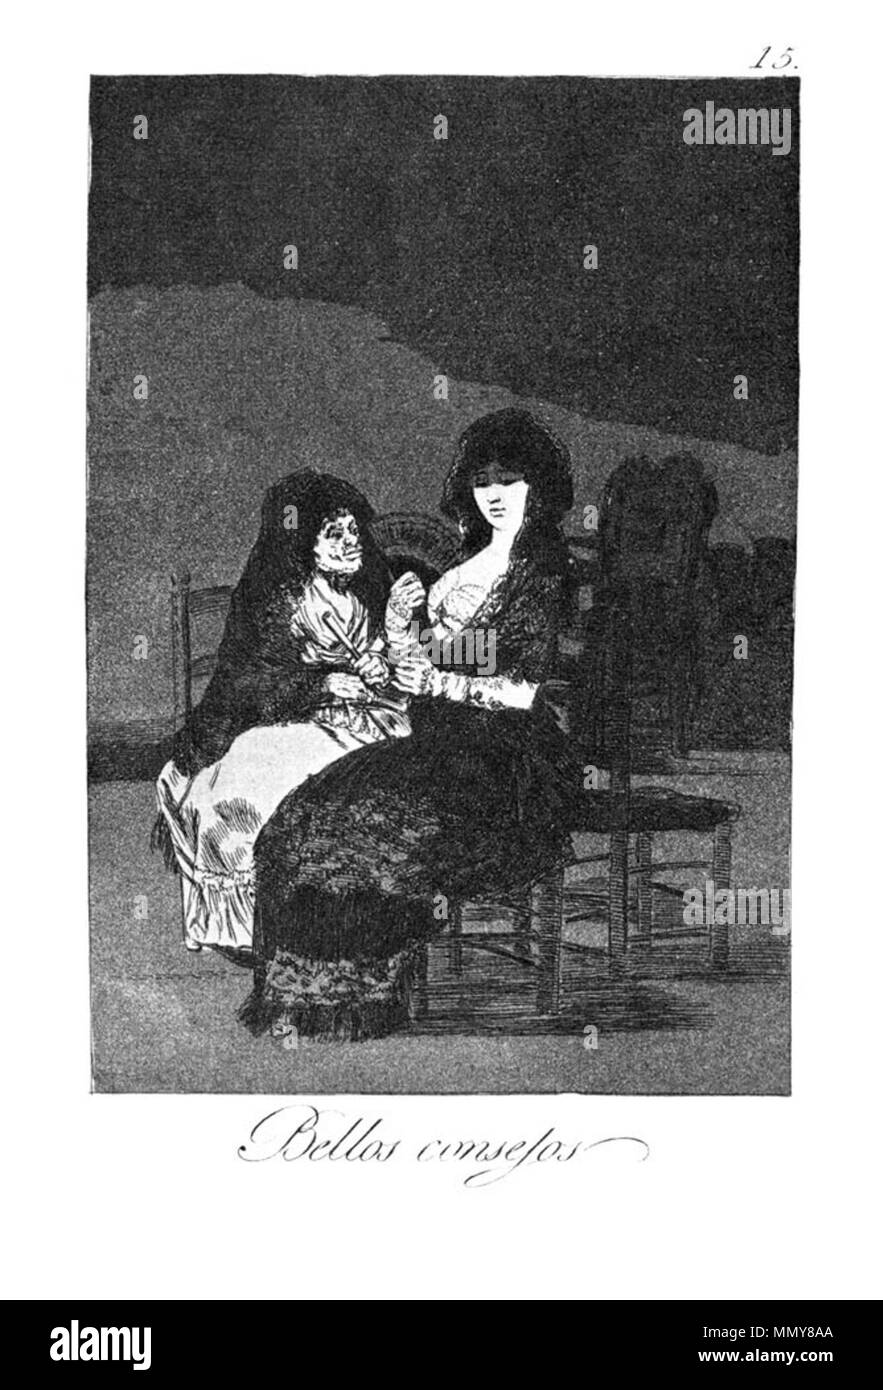 . Los Caprichos is a set of 80 aquatint prints created by Francisco Goya for release in 1799.  . 1799.   Francisco Goya (1746–1828)   Alternative names Francisco Goya Lucientes, Francisco de Goya y Lucientes, Francisco José Goya Lucientes  Description Spanish painter, printmaker, lithographer, engraver and etcher  Date of birth/death 30 March 1746 16 April 1828  Location of birth/death Fuendetodos Bordeaux  Work location Madrid, Zaragoza, Bordeaux  Authority control  : Q5432 VIAF:?54343141 ISNI:?0000 0001 2280 1608 ULAN:?500118936 LCCN:?n79003363 NLA:?36545788 WorldCat Goya - Caprichos (15 - Stock Image